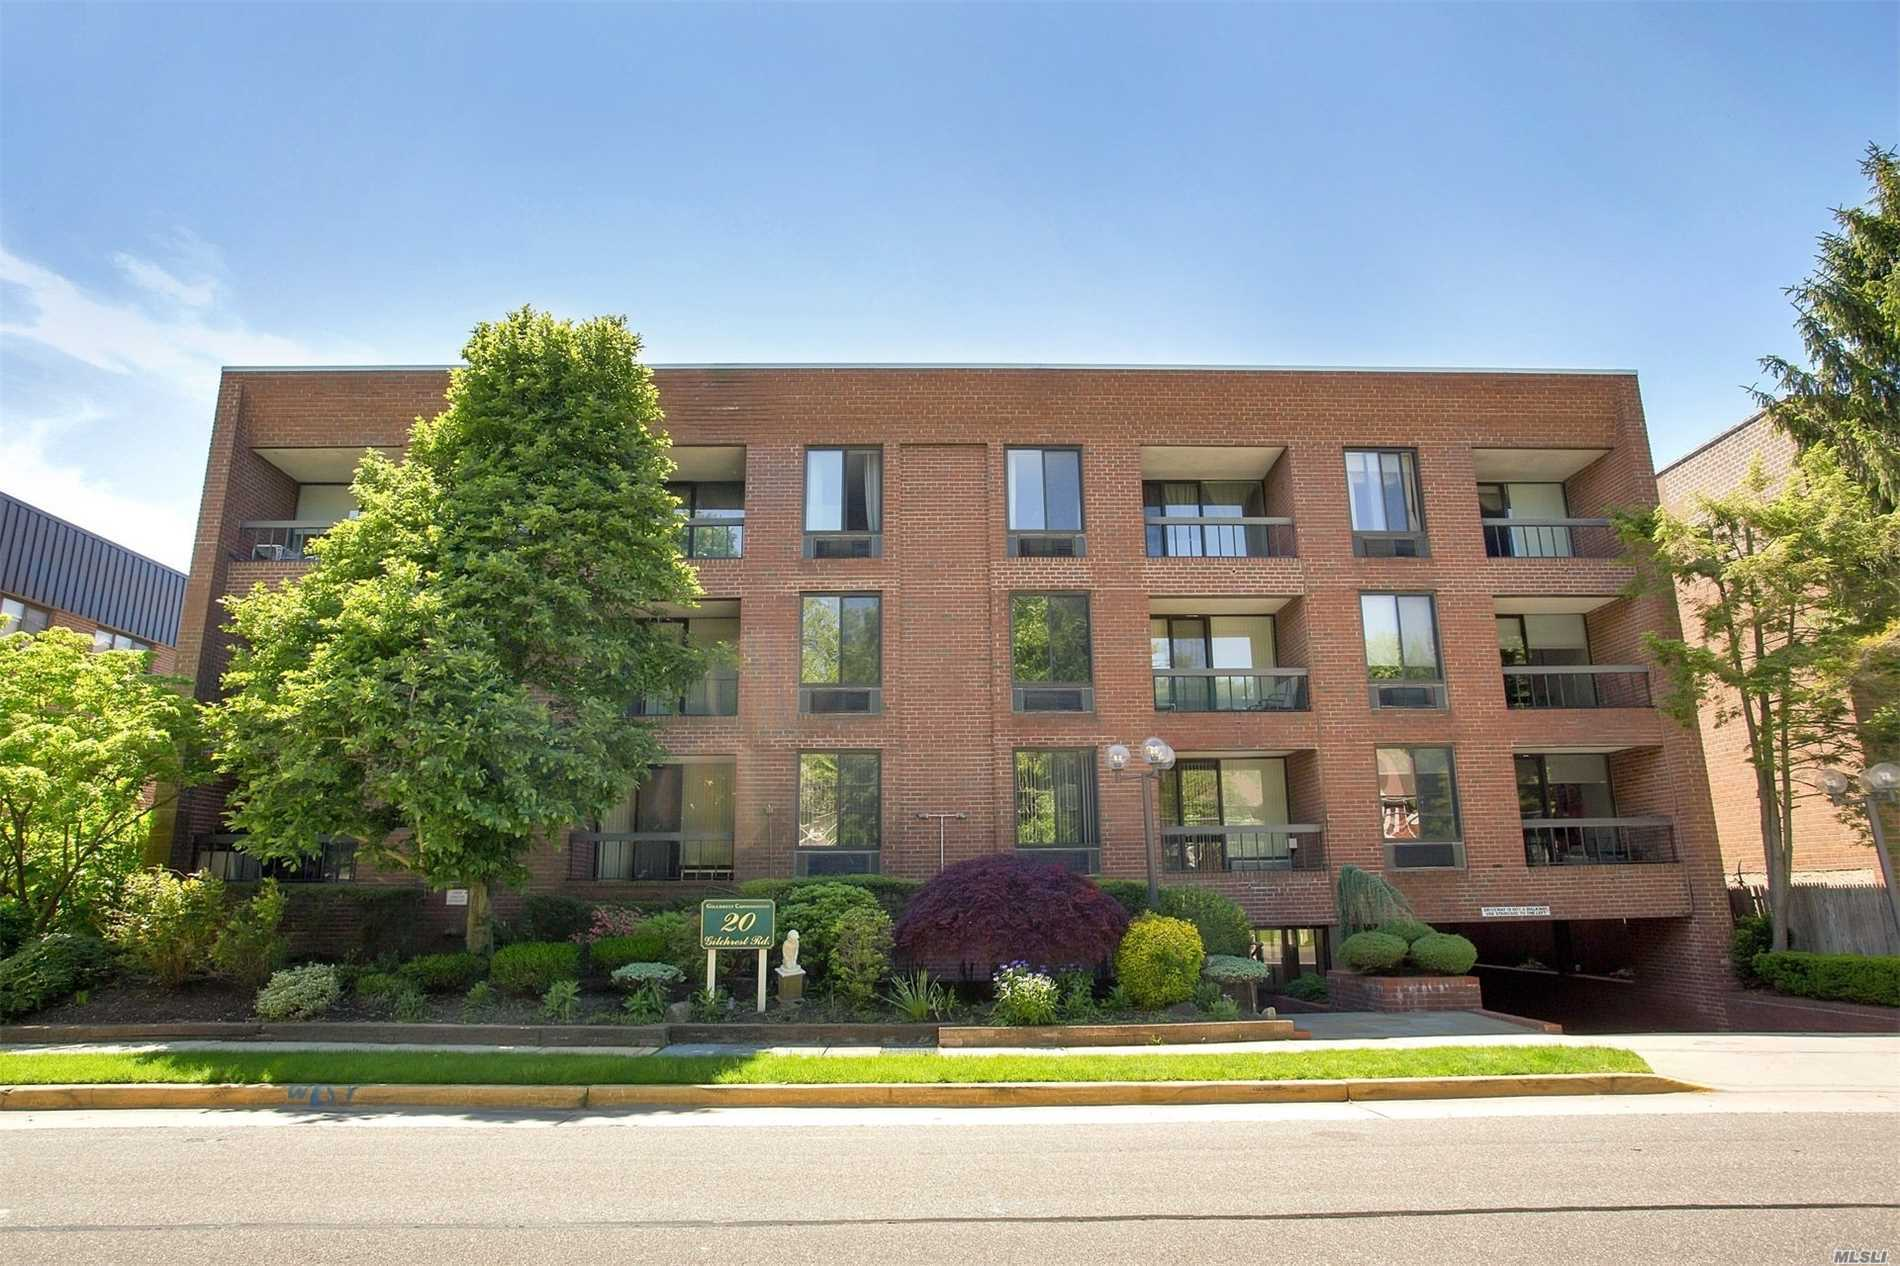 Property for sale at 20 Gilchrest Road # 2E, Great Neck NY 11021, Great Neck,  New York 11021